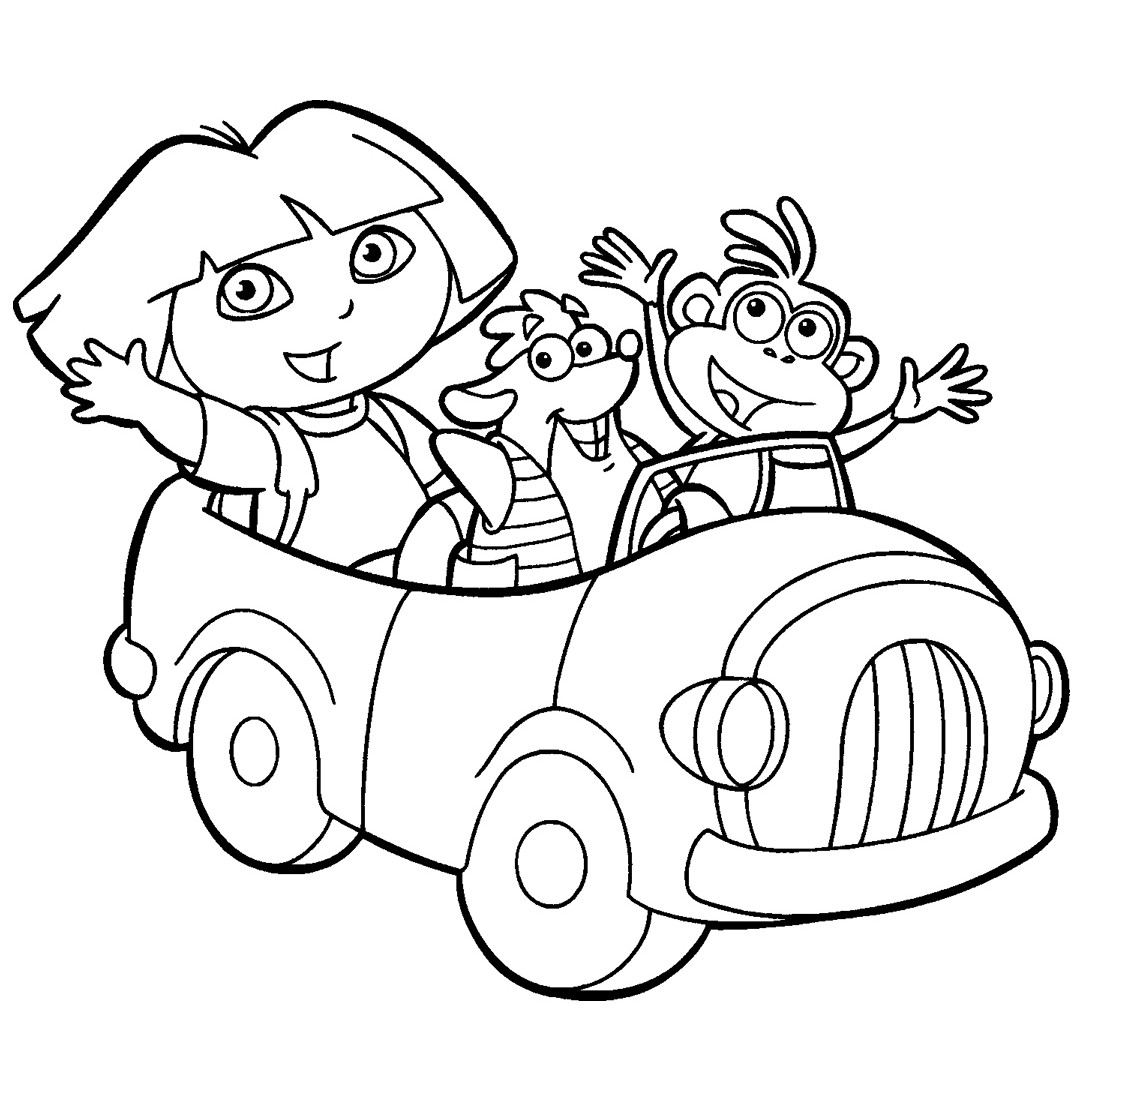 Craftoholic dora the explorer coloring pages for Dora the explorer coloring page